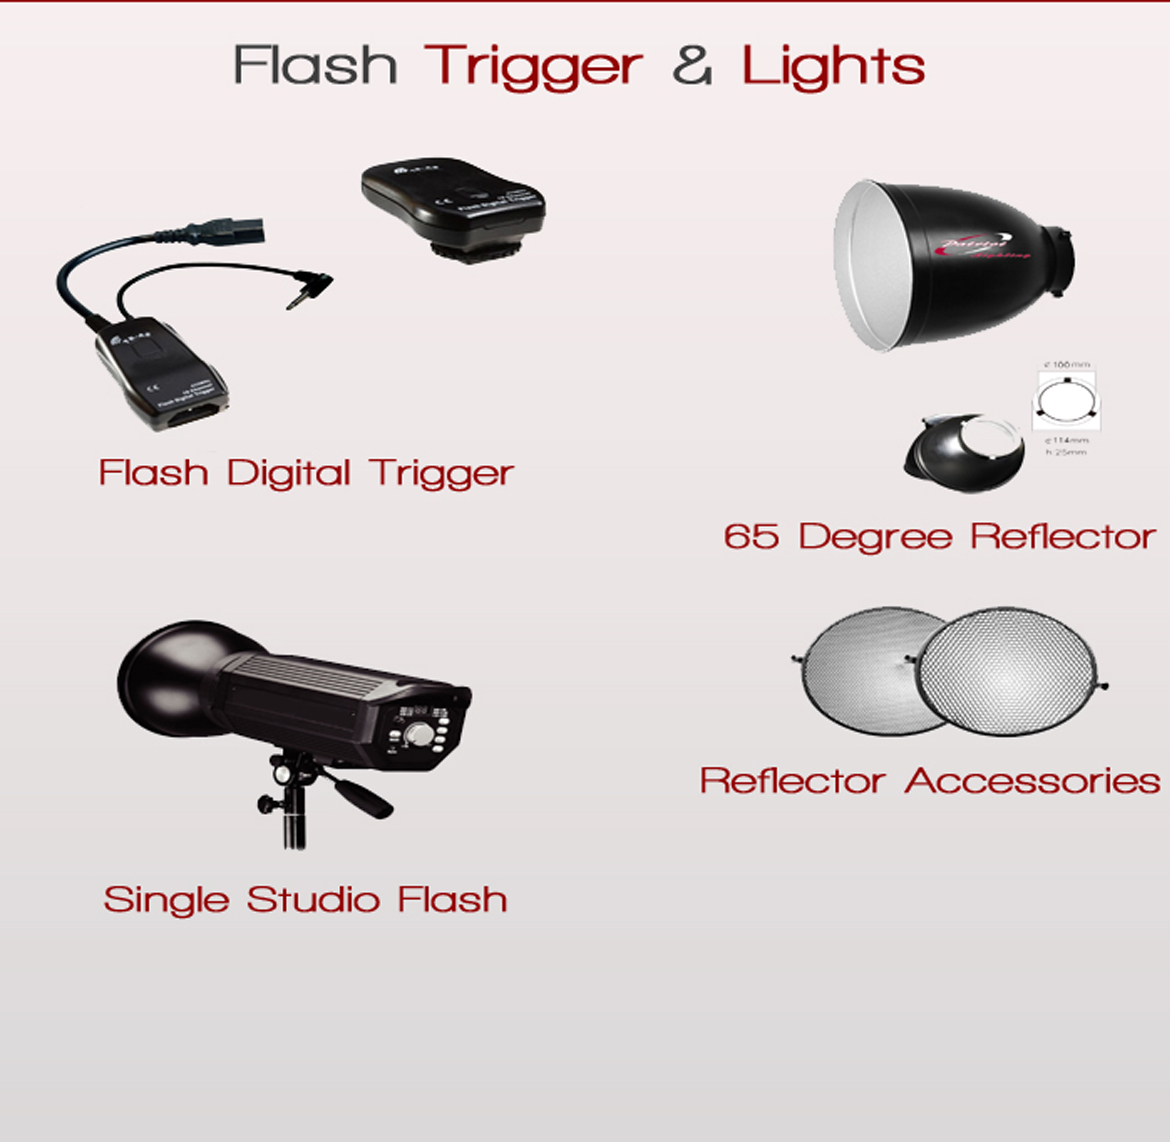 flash-trigger-lights-tenaui1